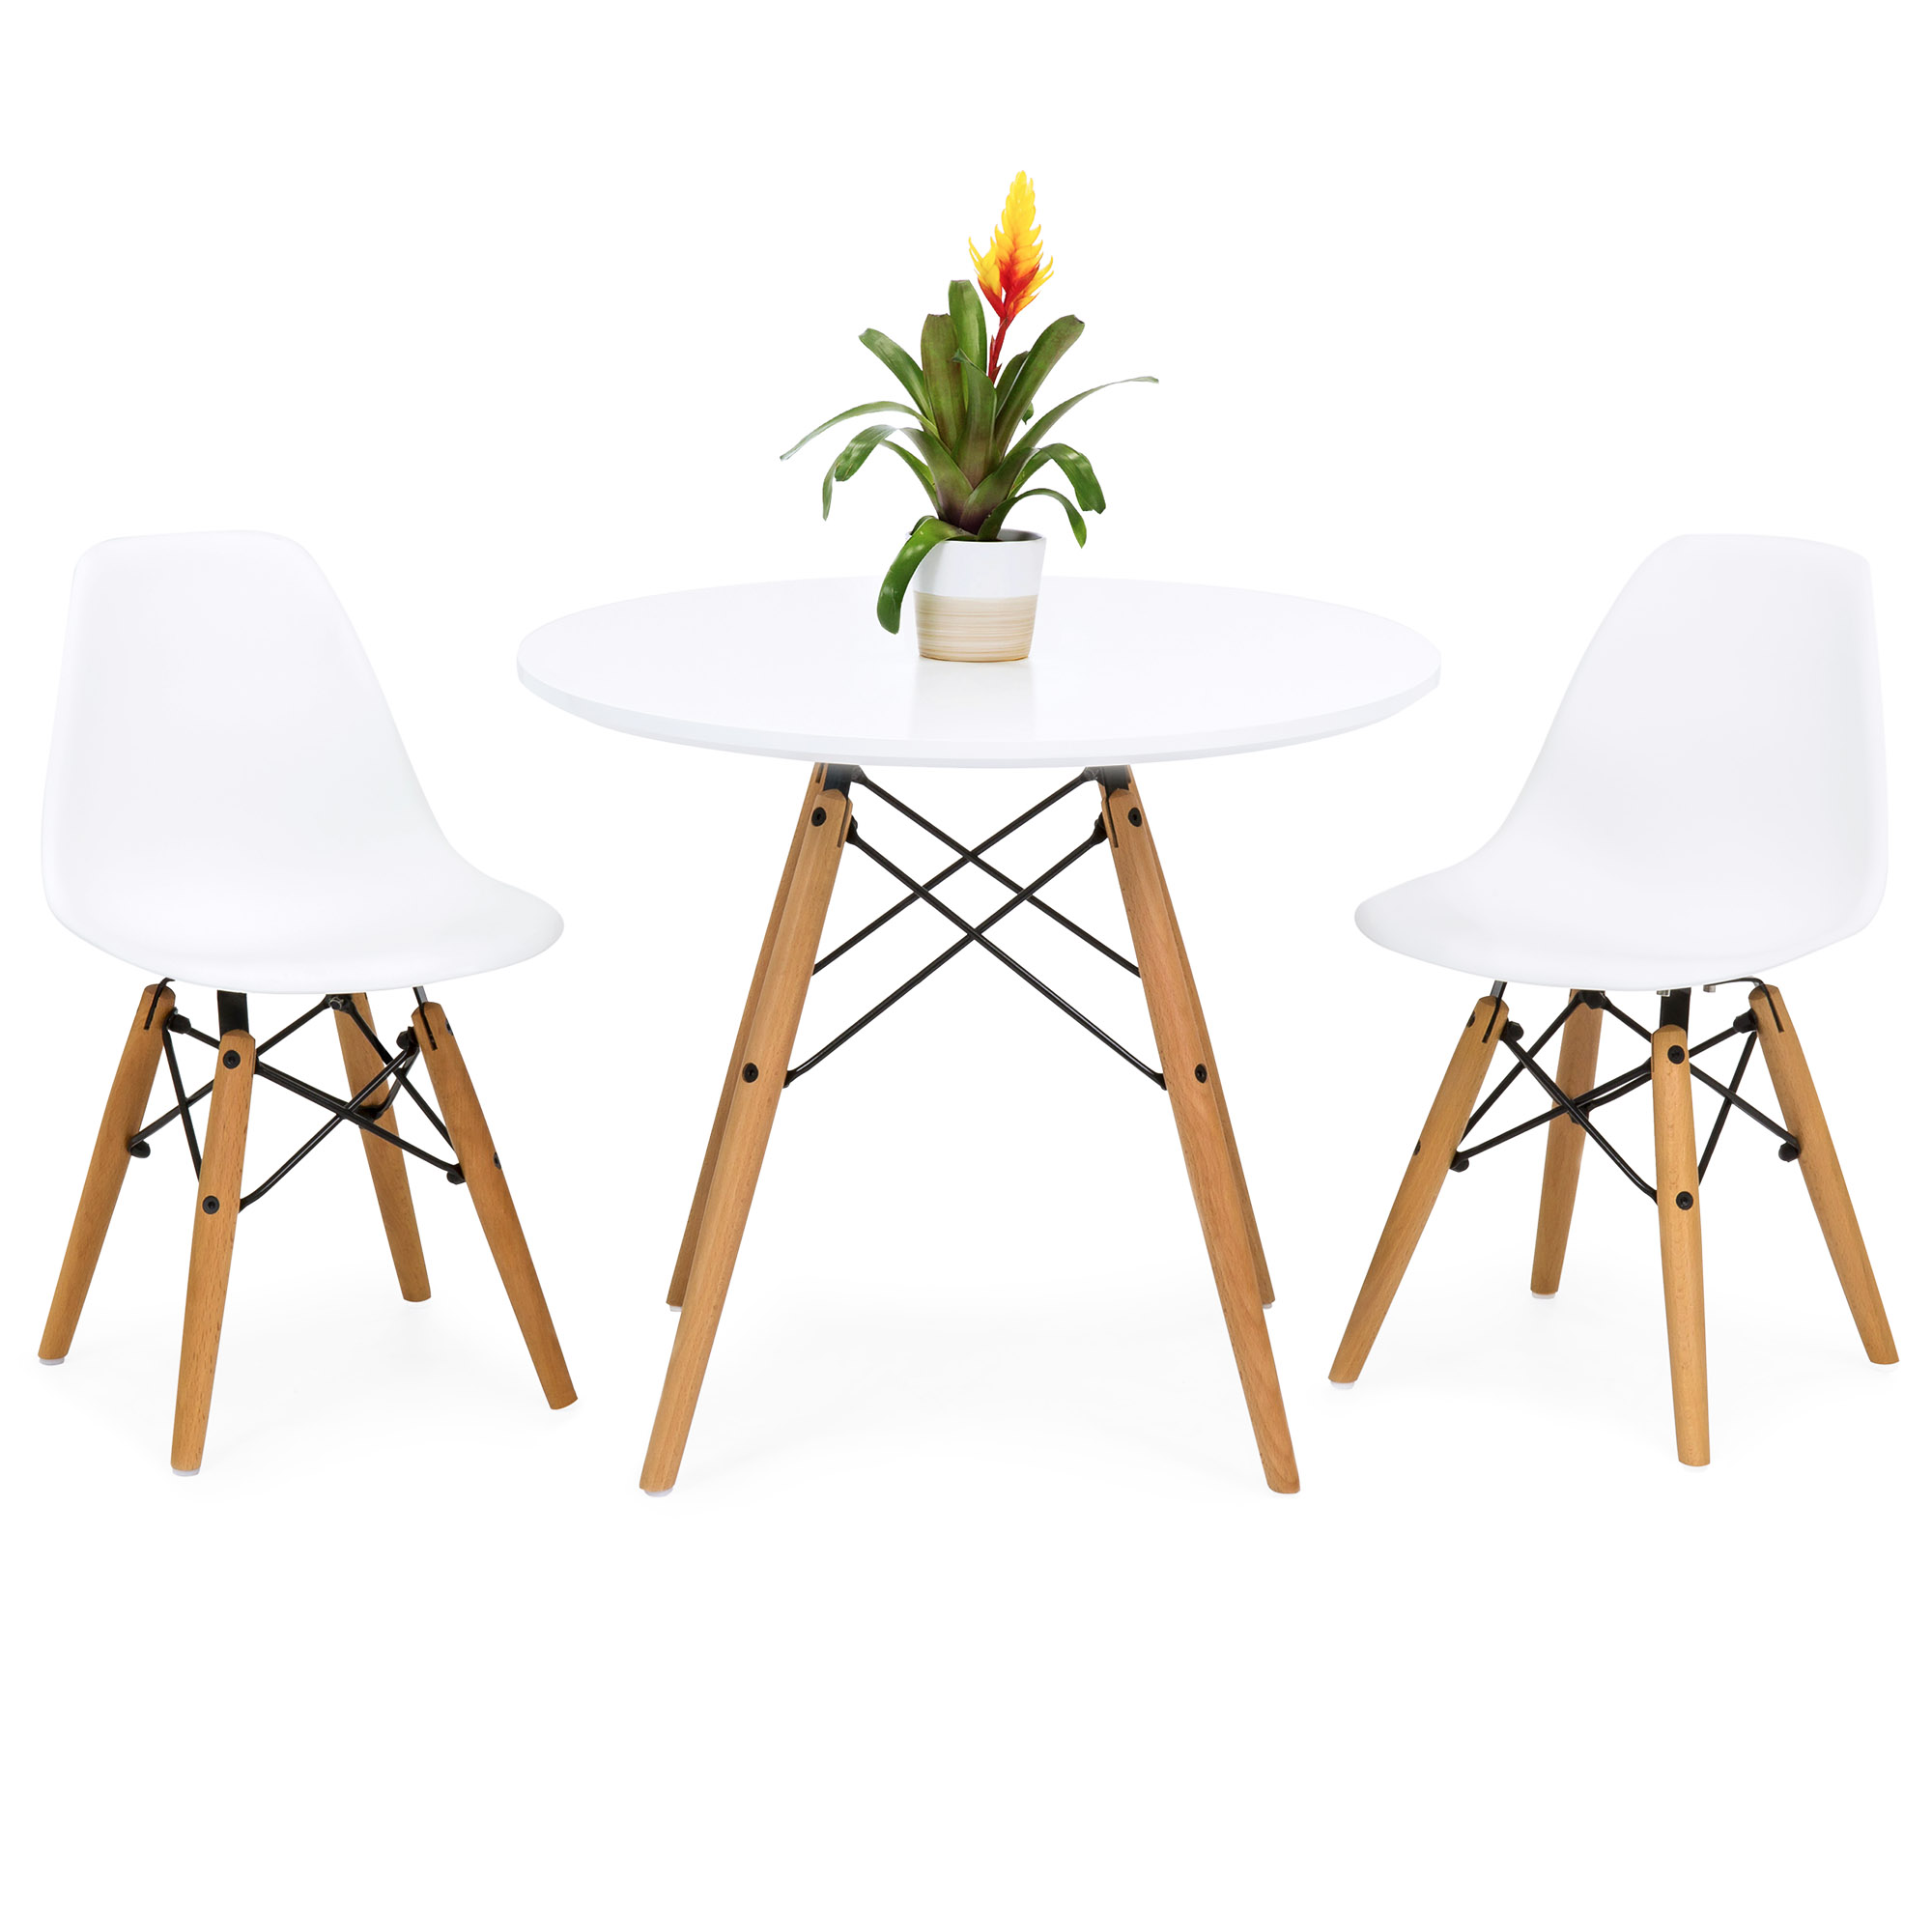 Wooden Small Dining Table And 2 Chairs Set Contemporary: Best Choice Products Kids Mid-Century Modern Mini Eames